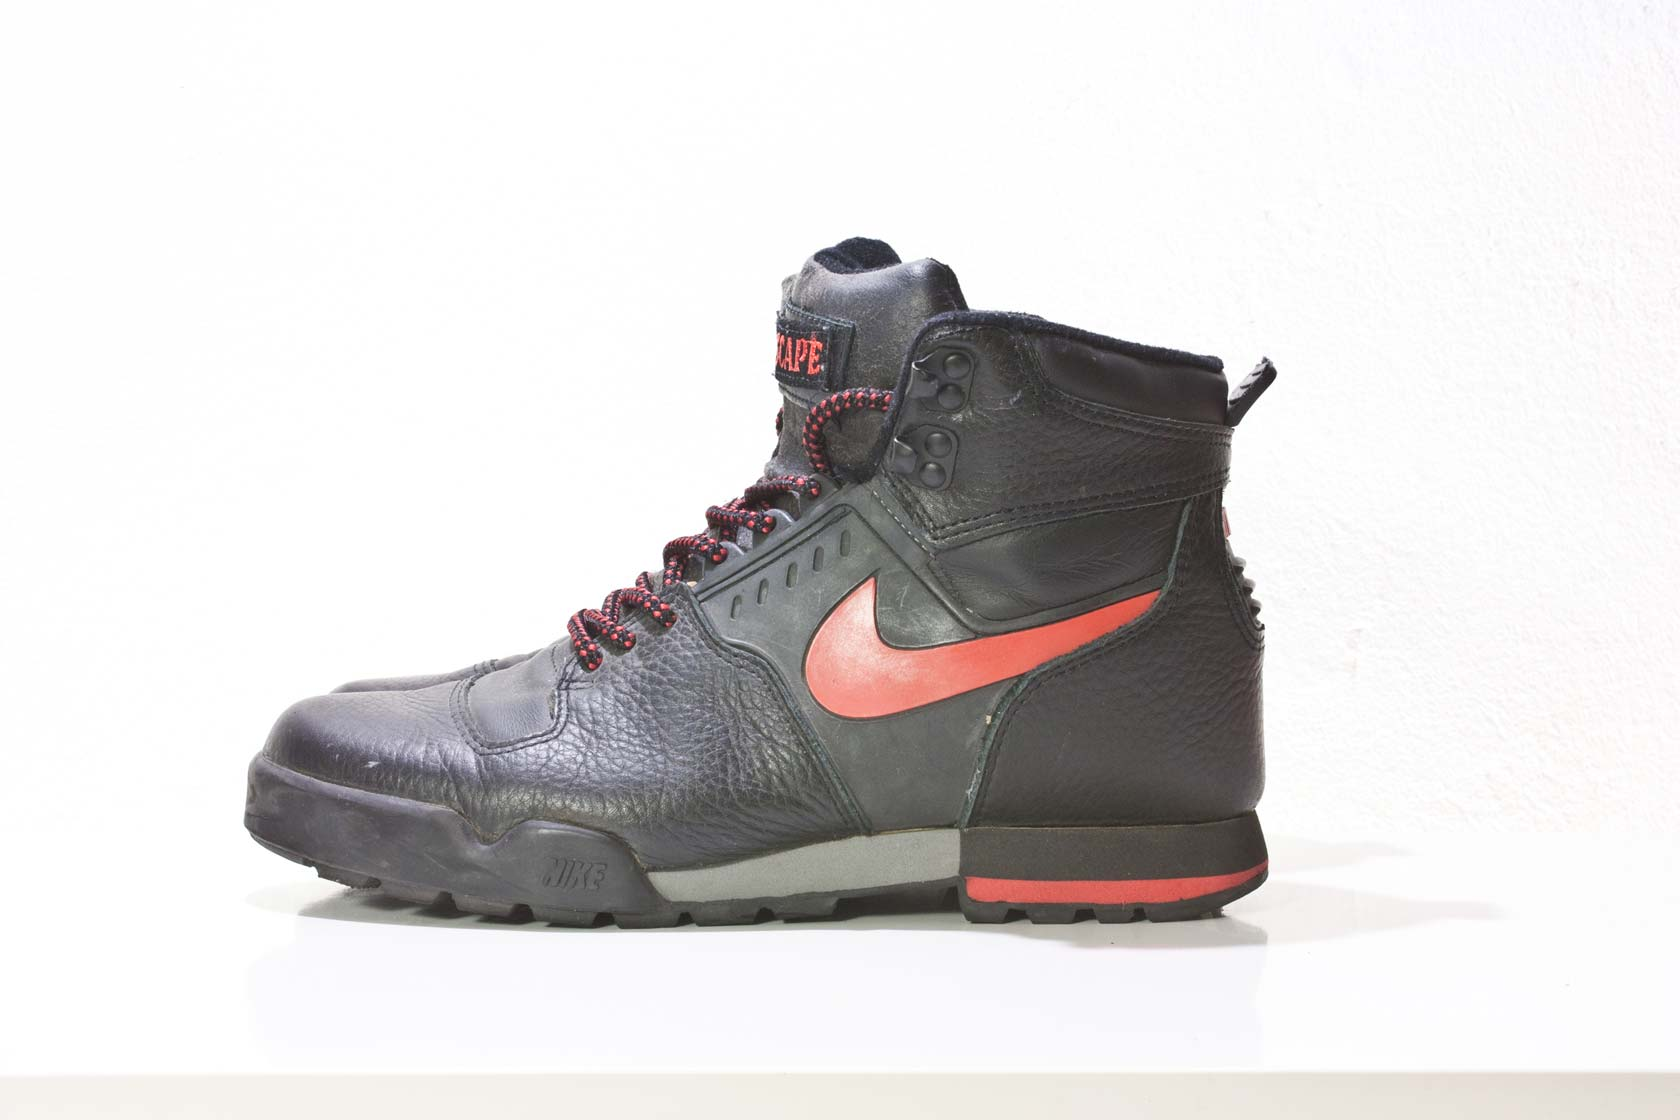 Nike Escape Boots Lebron 10 Shoes For Sale Paypal  e41dd7f7784f